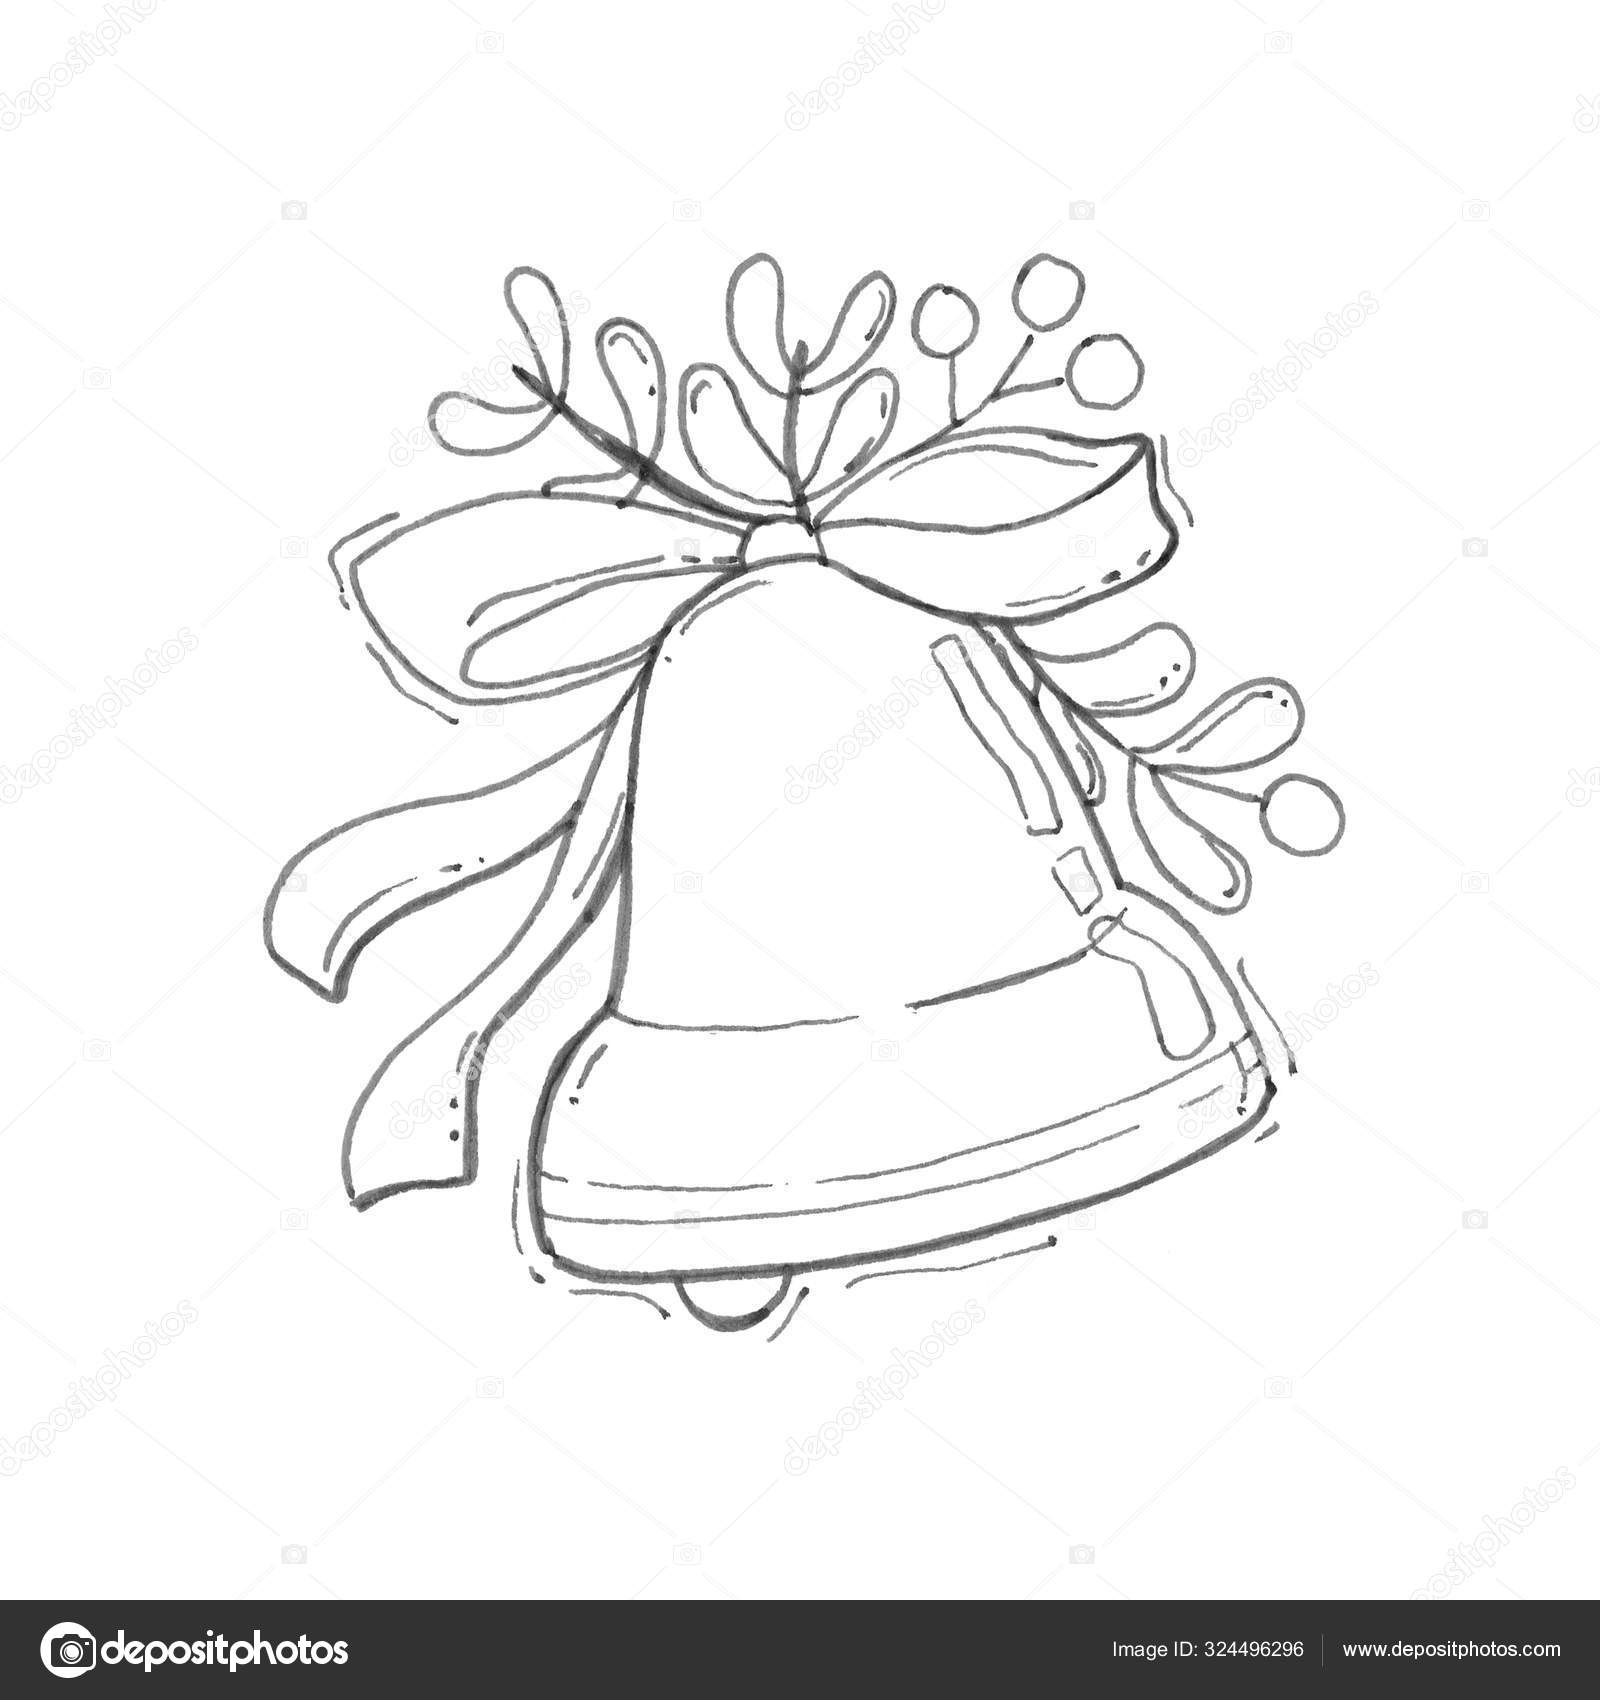 Jingle Bell Merry Christmas Coloring Page Black White Background Coloring Stock Photo Image By C Aglia83 324496296